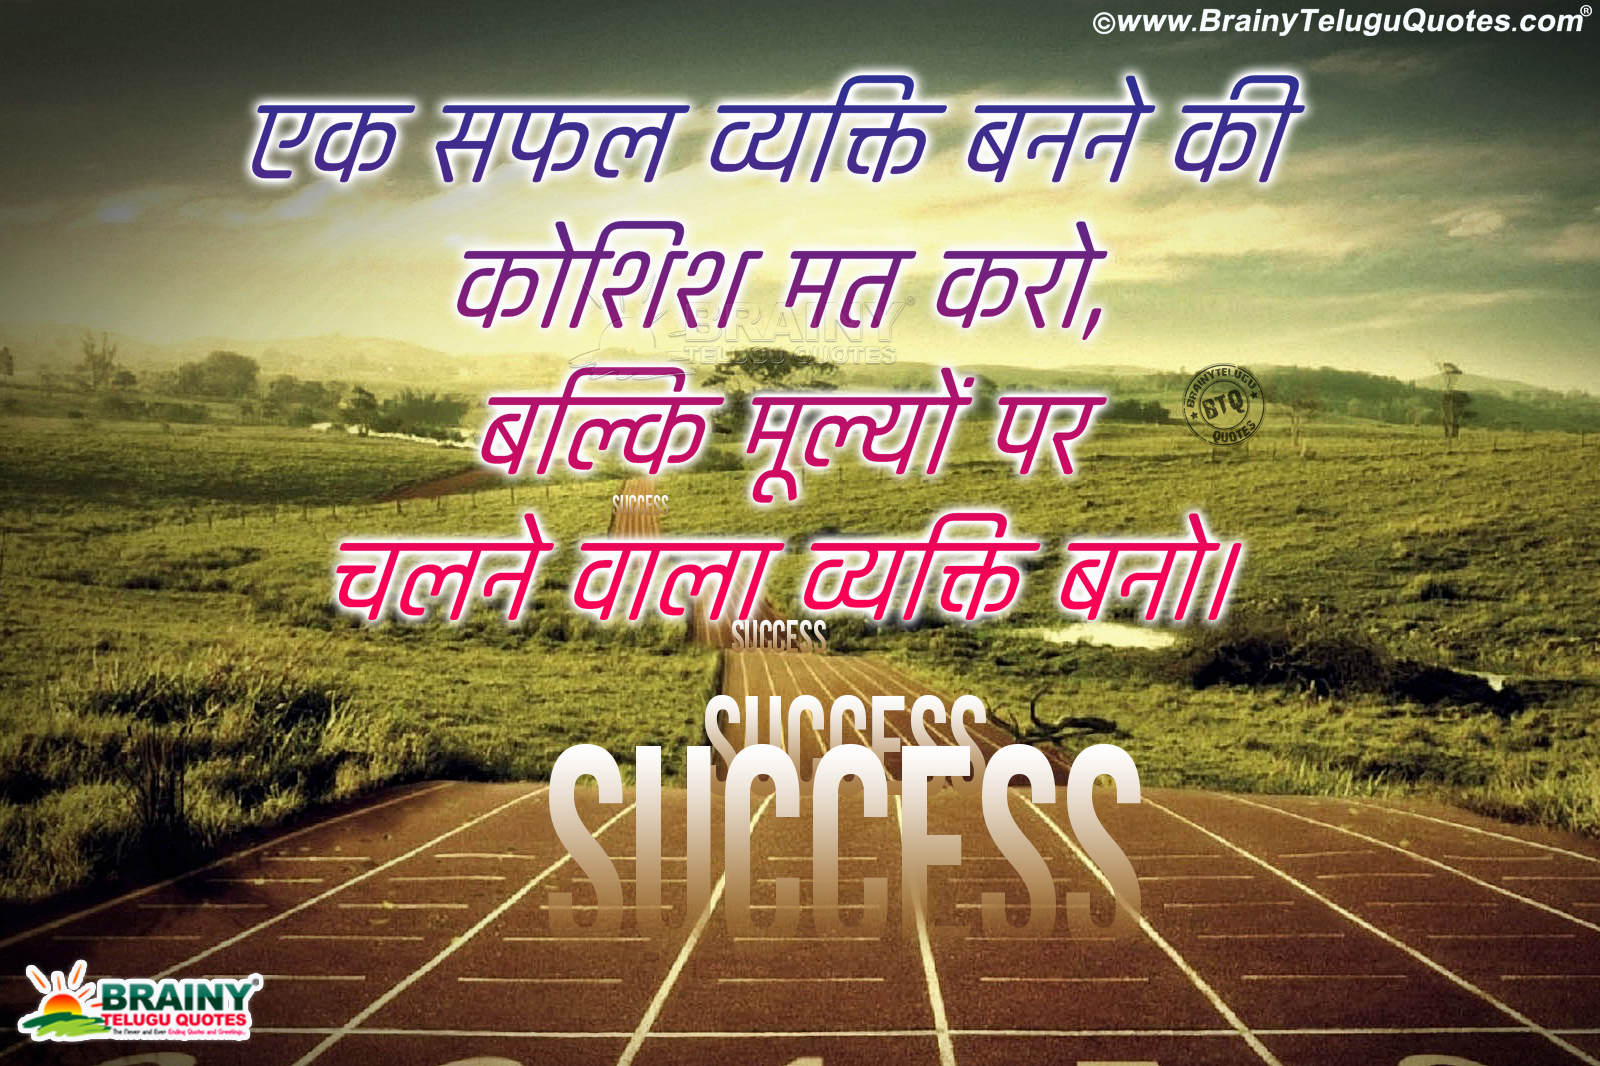 Hindi Life Success Quotes With Hd Wallpapers Winning In Life Best Hd Wallpapers Quotes Brainyteluguquotes Comtelugu Quotes English Quotes Hindi Quotes Tamil Quotes Greetings